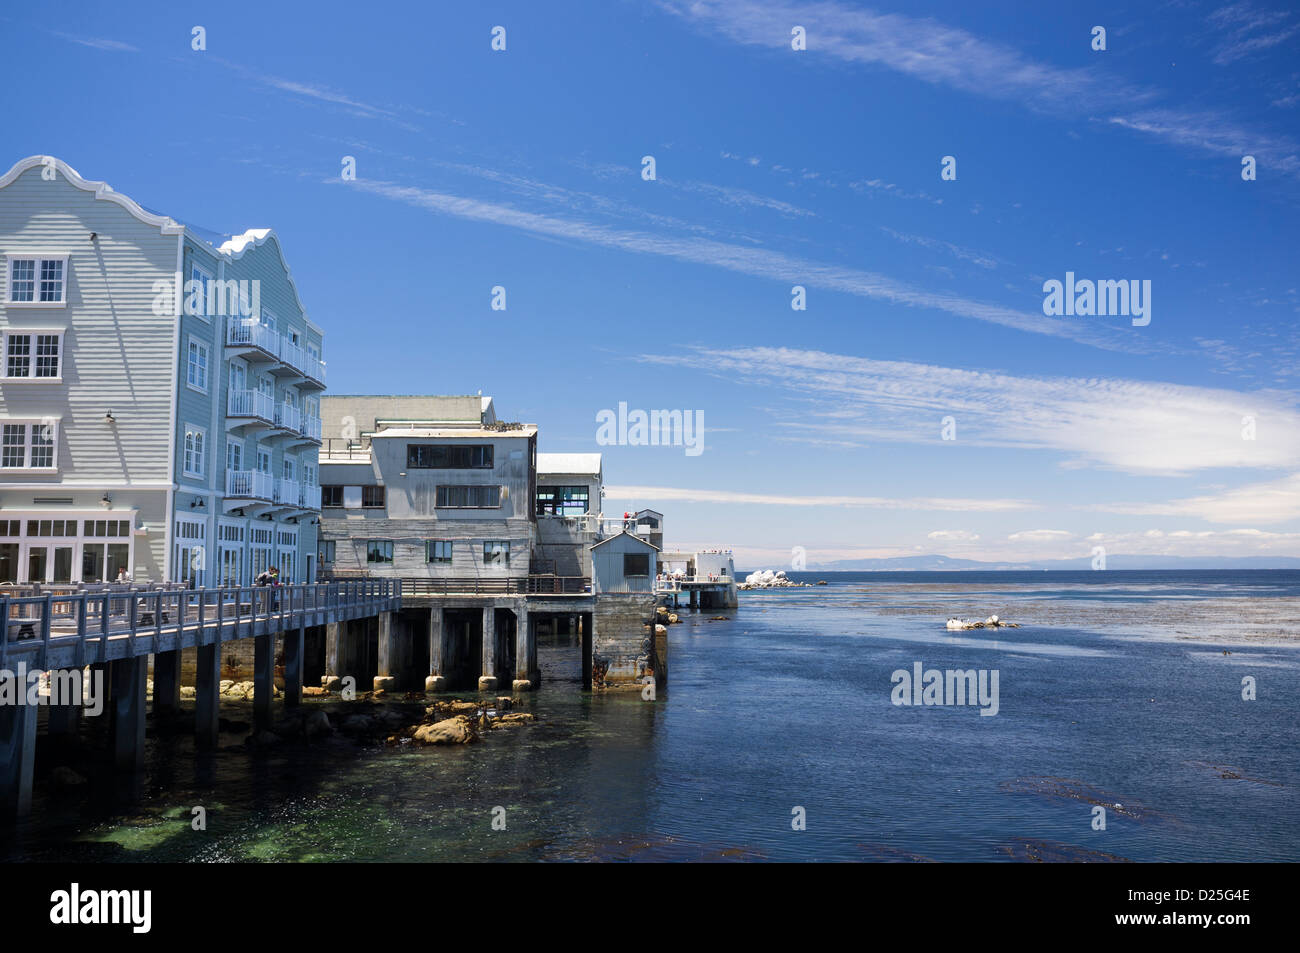 Sea Front Cannery Row Monterey Bay - Stock Image